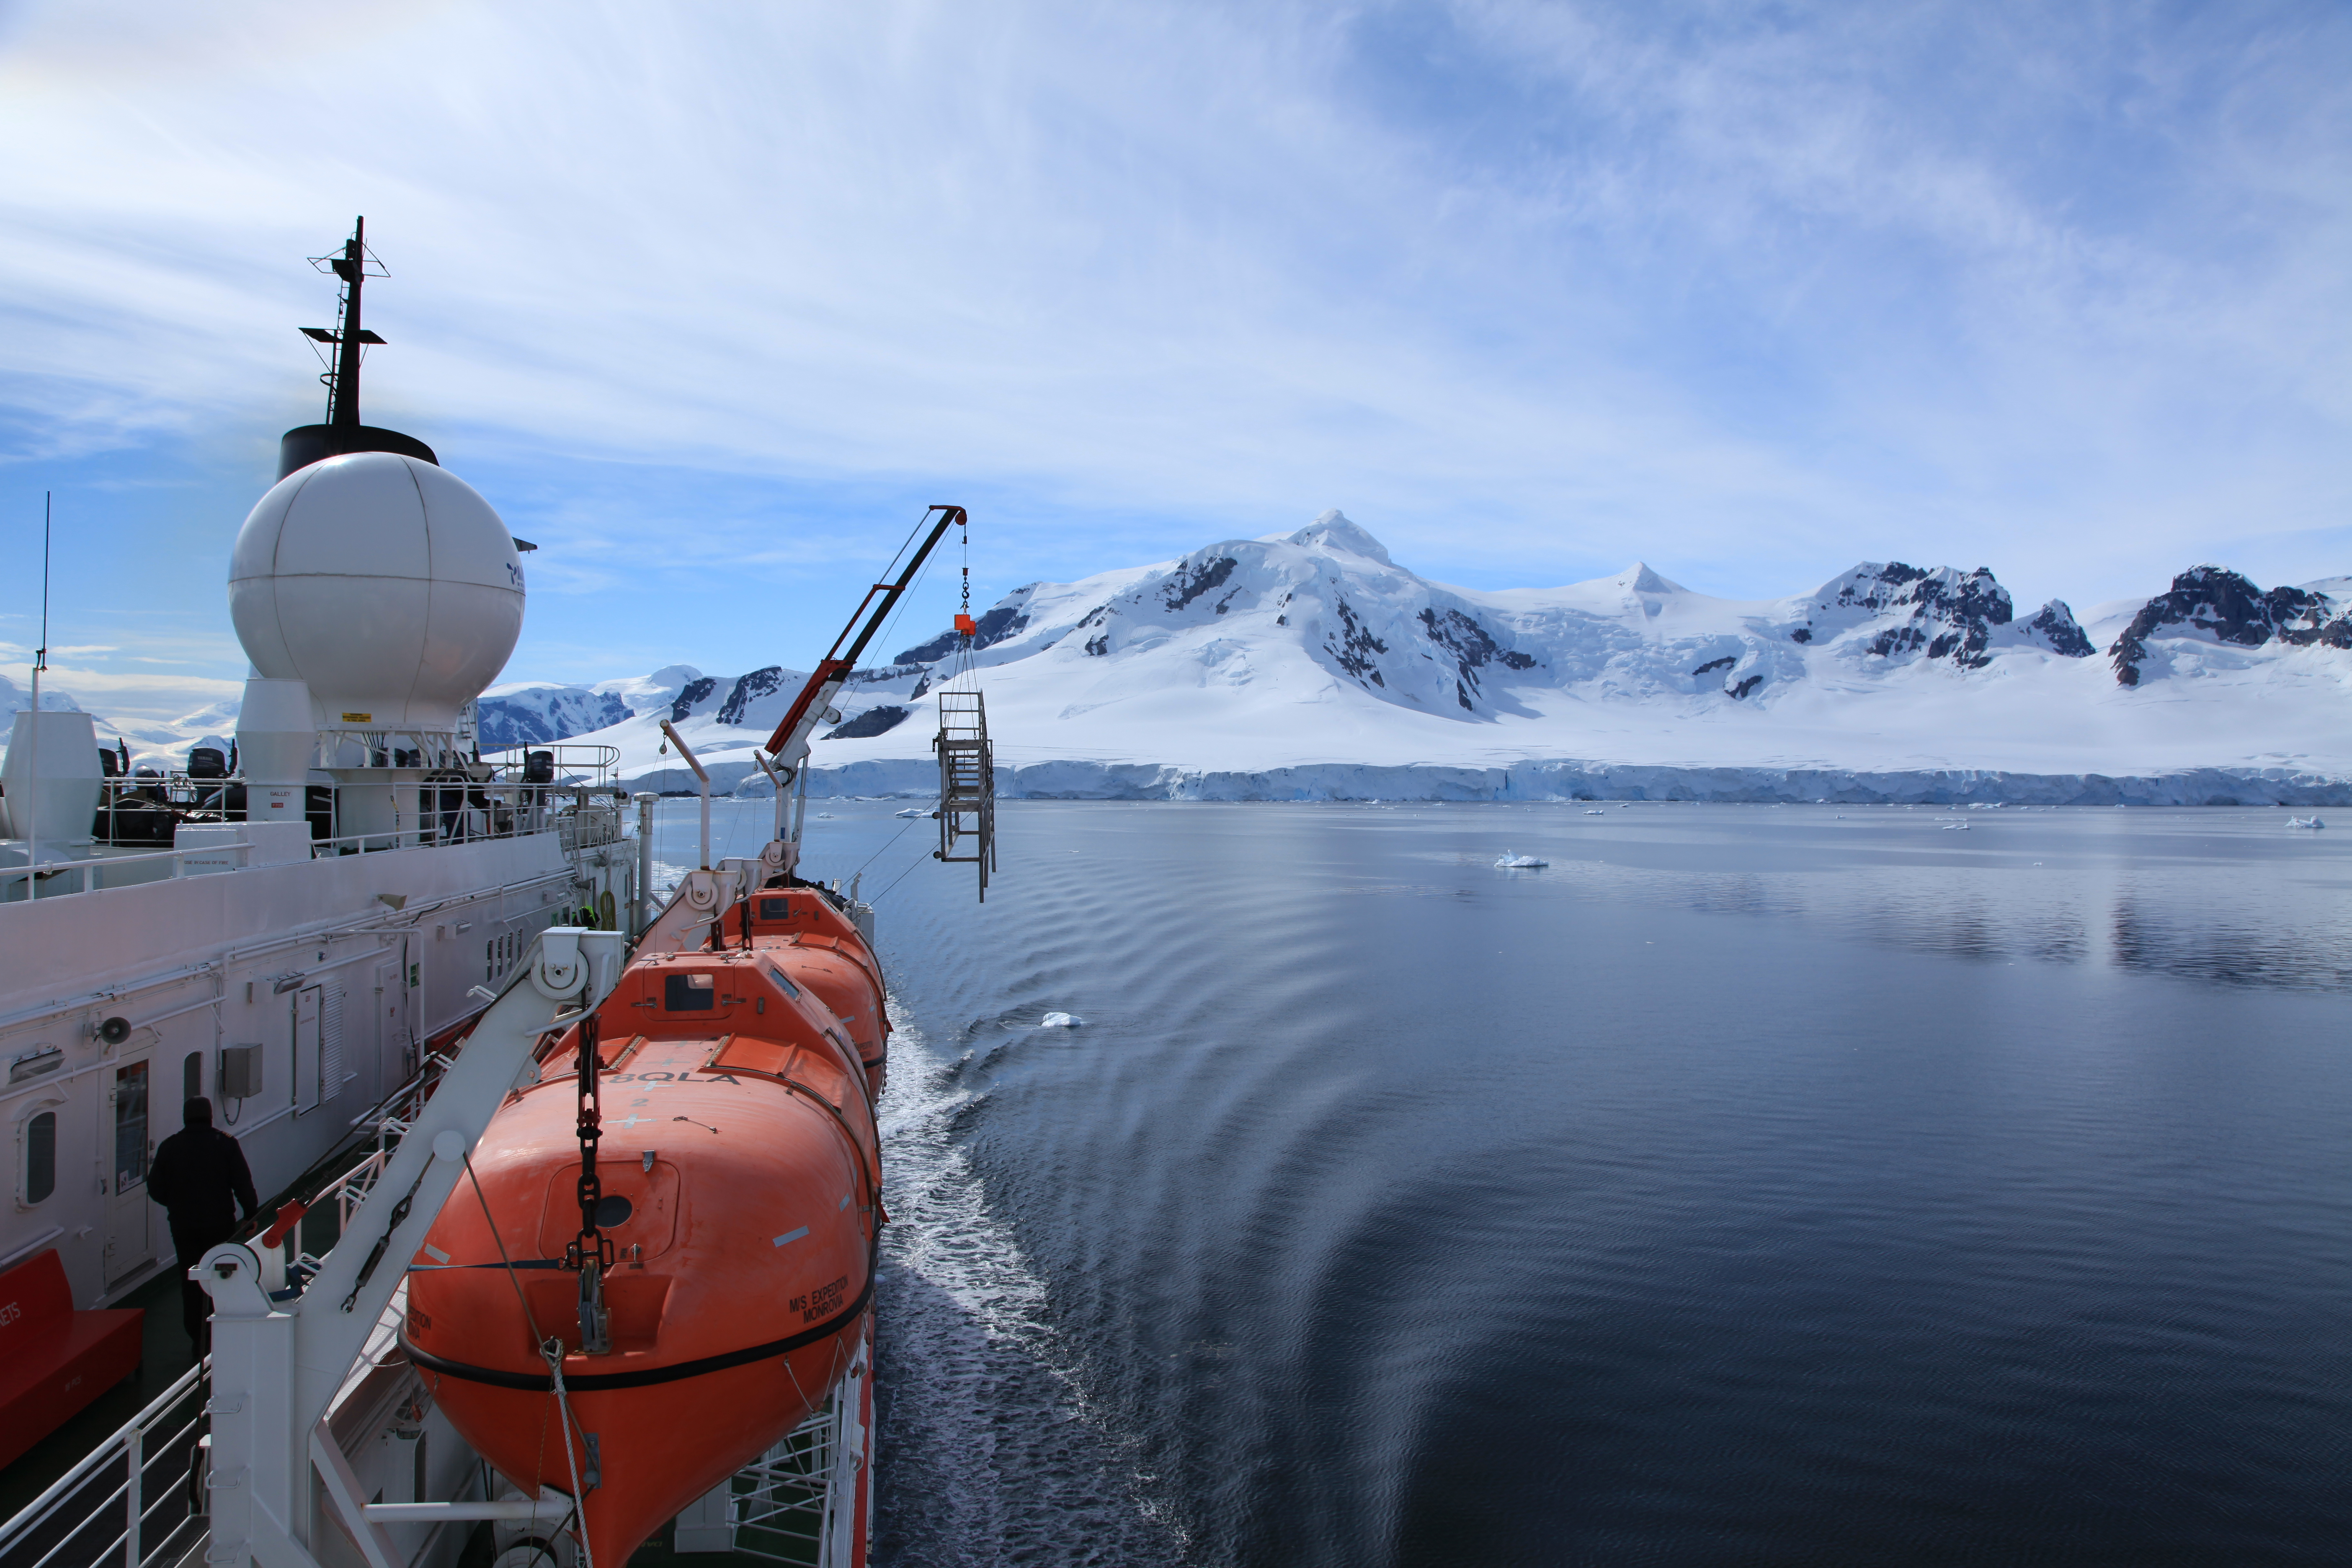 file m s expedition in the gerlache strait antarctica